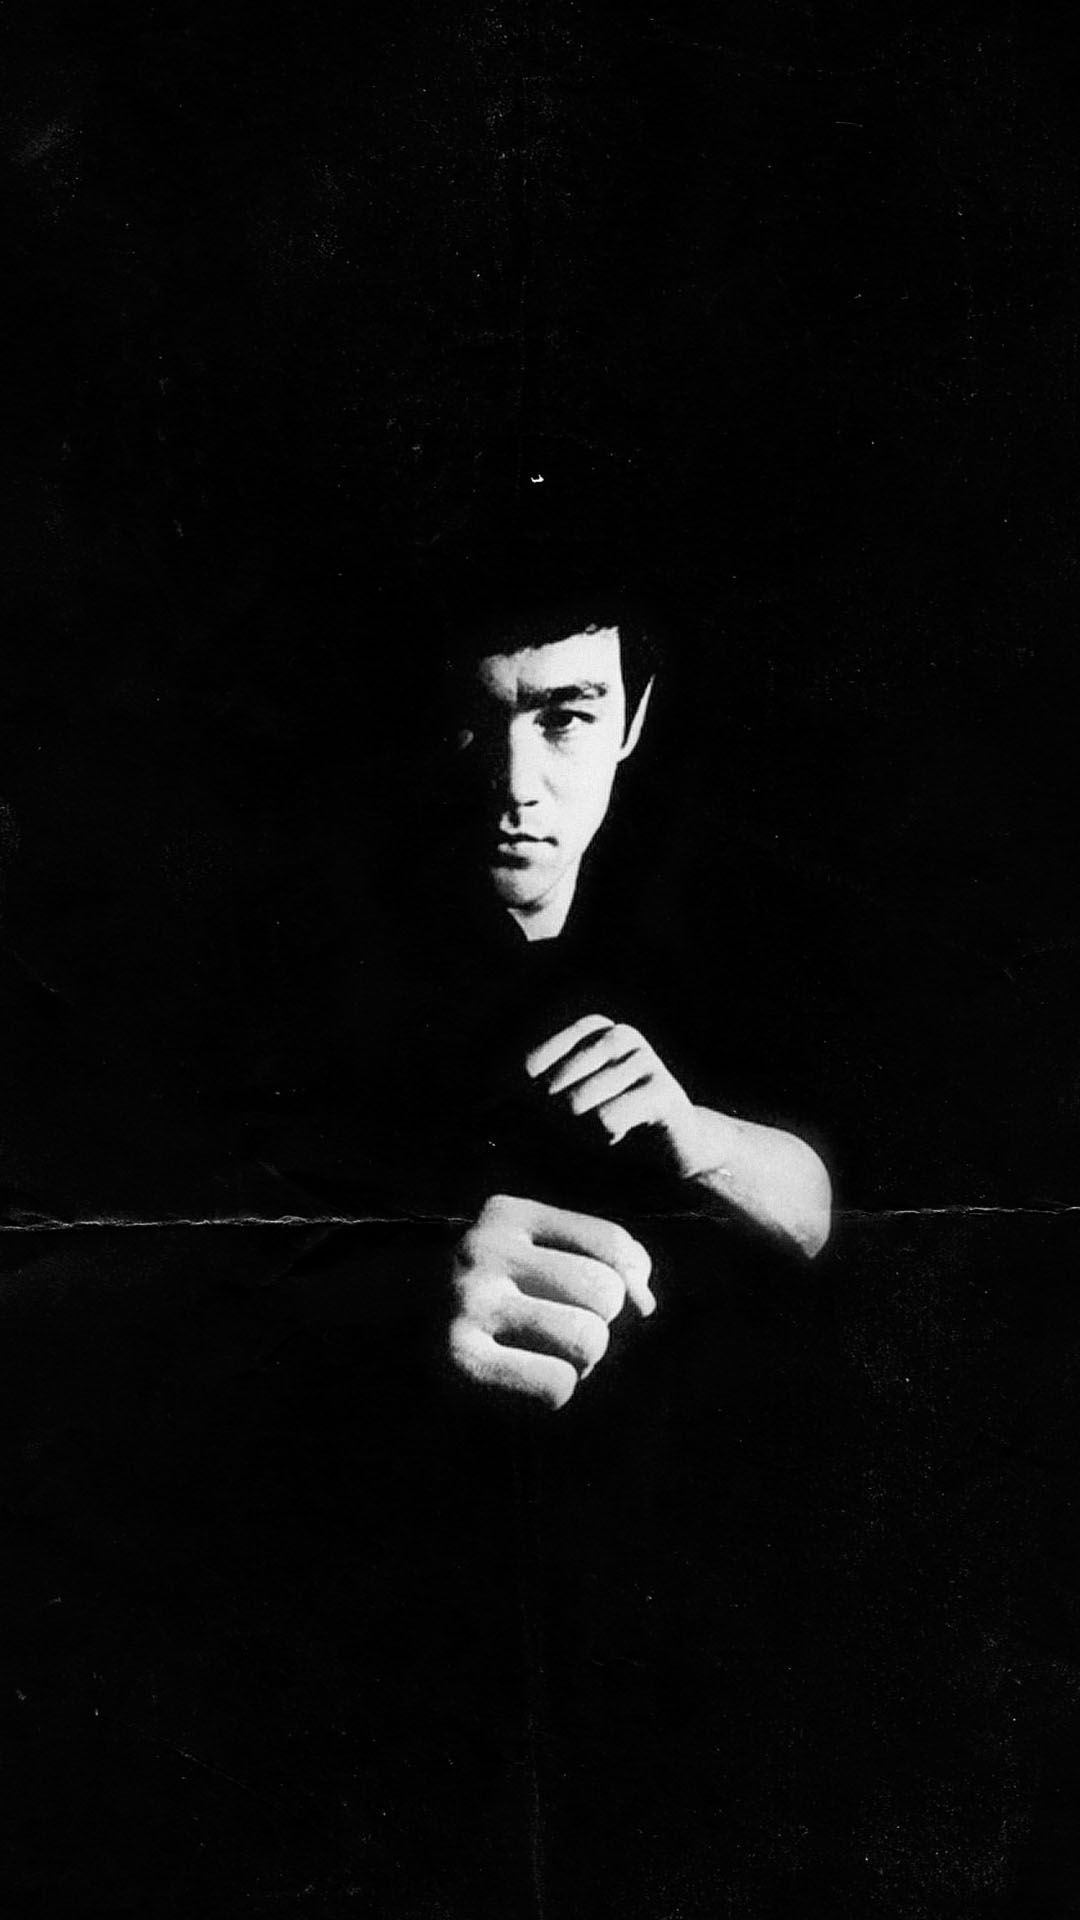 Bruce Lee Collection See All Wallpapers Wallpapers Background Movies Bruce Lee Poster Bruce Lee Photos Bruce Lee Martial Arts